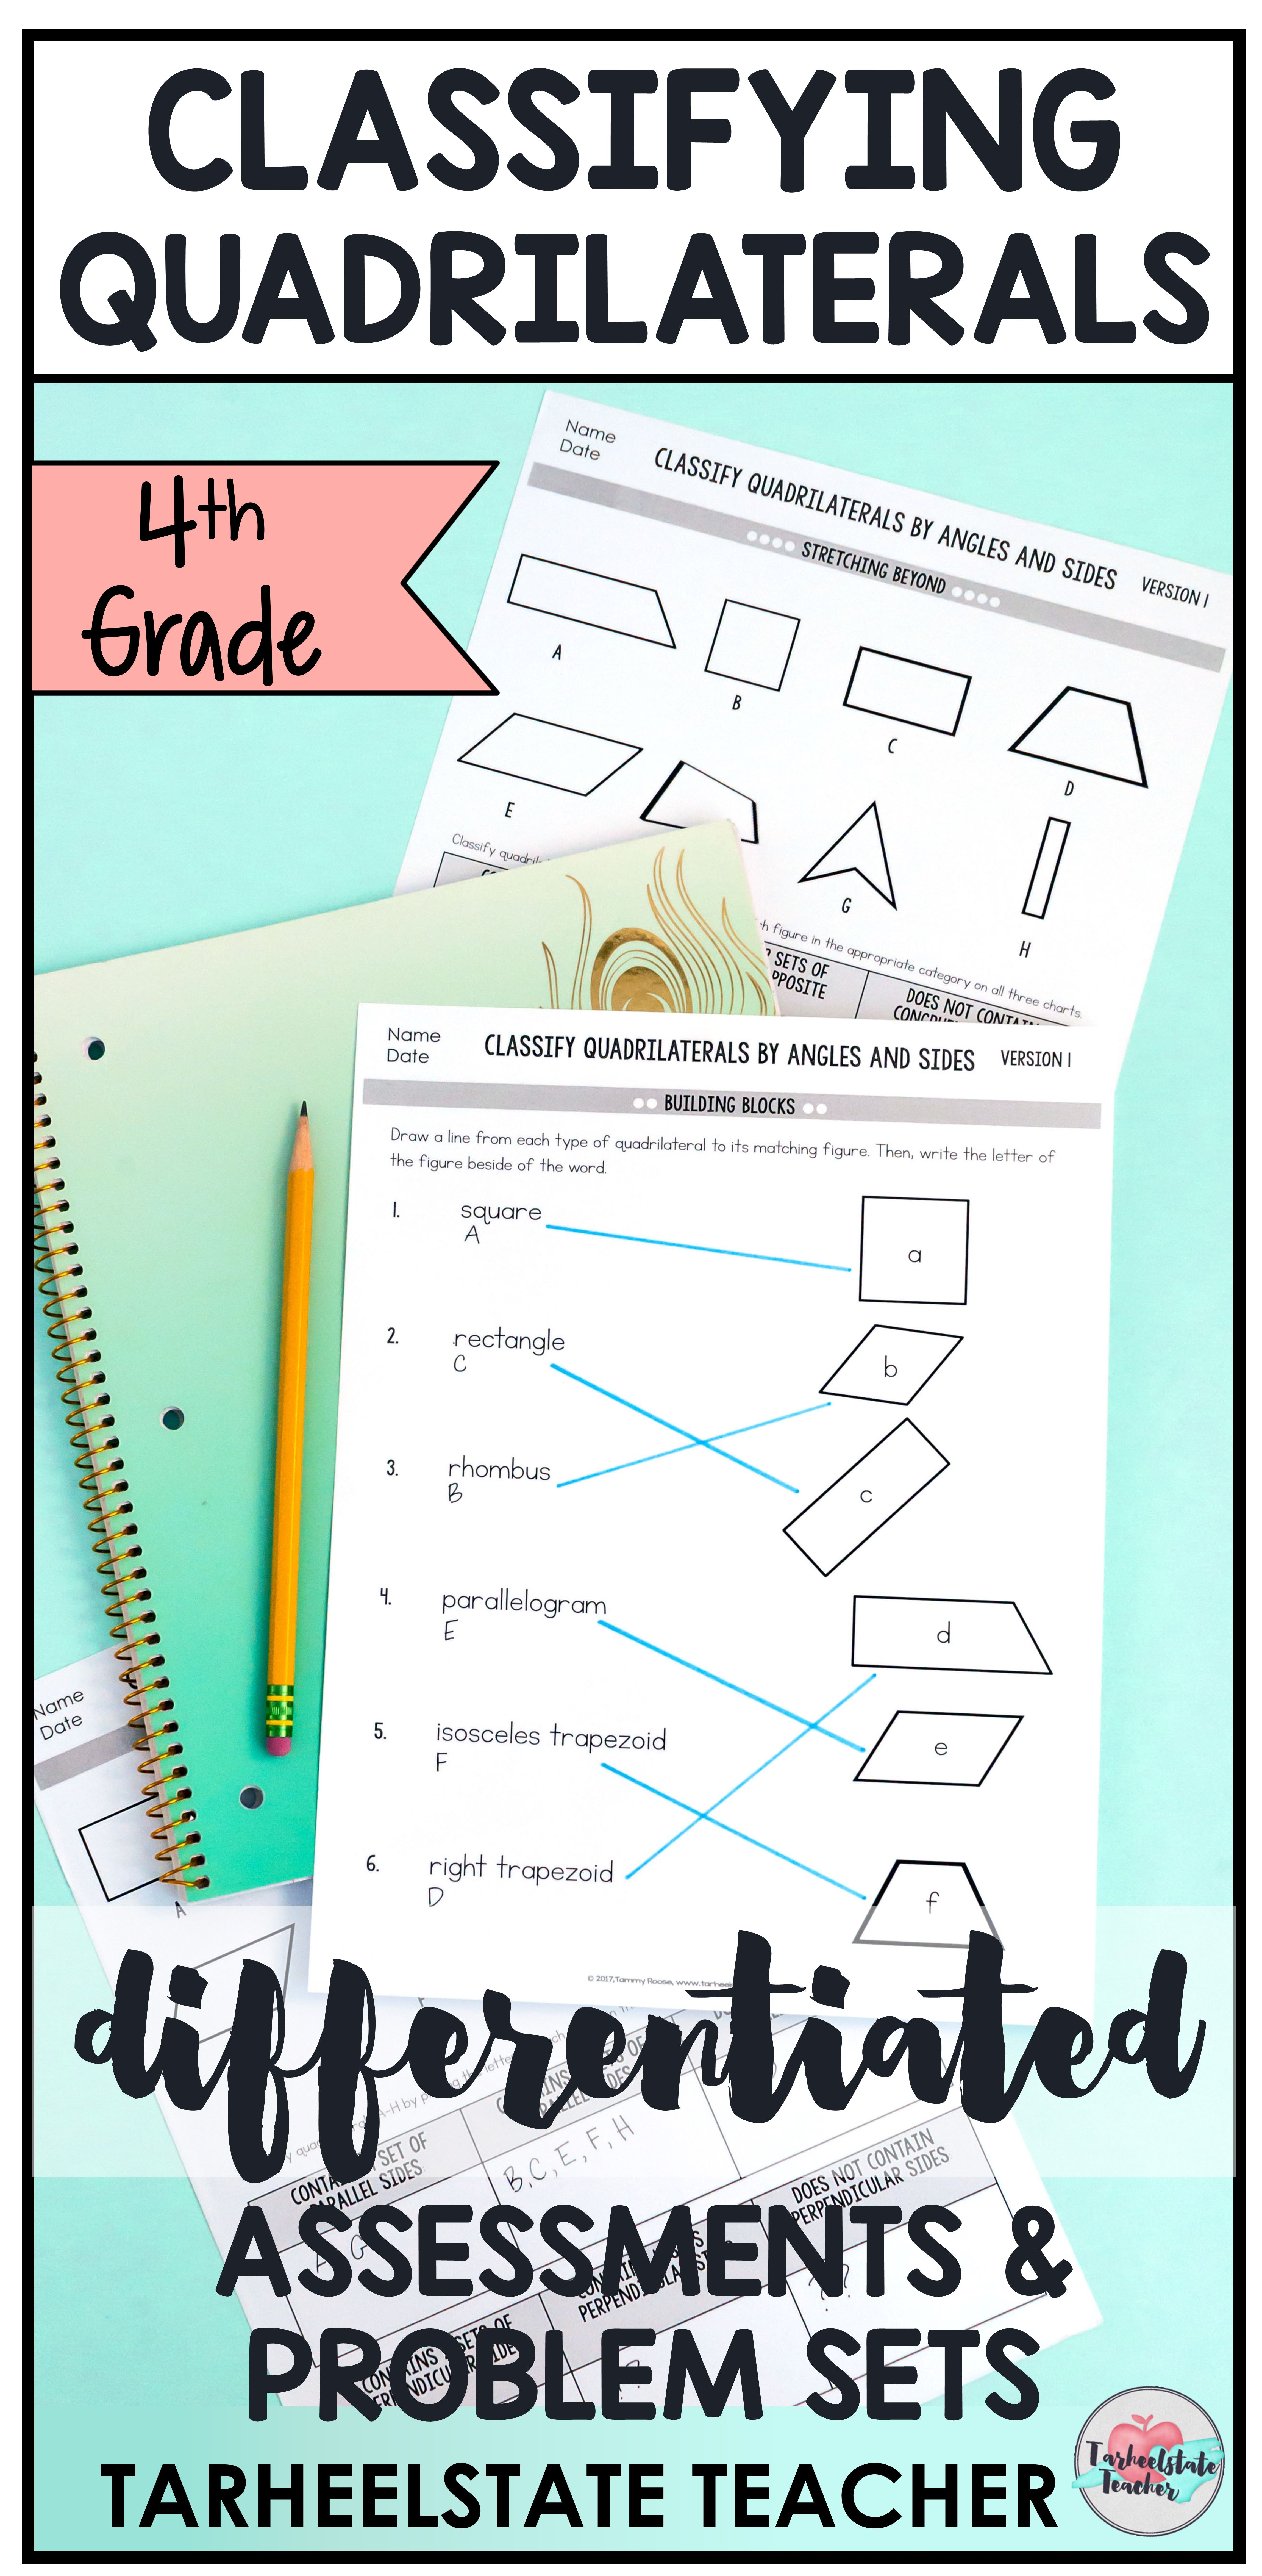 medium resolution of 4th Grade Geometry   Classifying Quadrilaterals Differentiated Worksheets    4th Grade Quadri…   Quadrilaterals